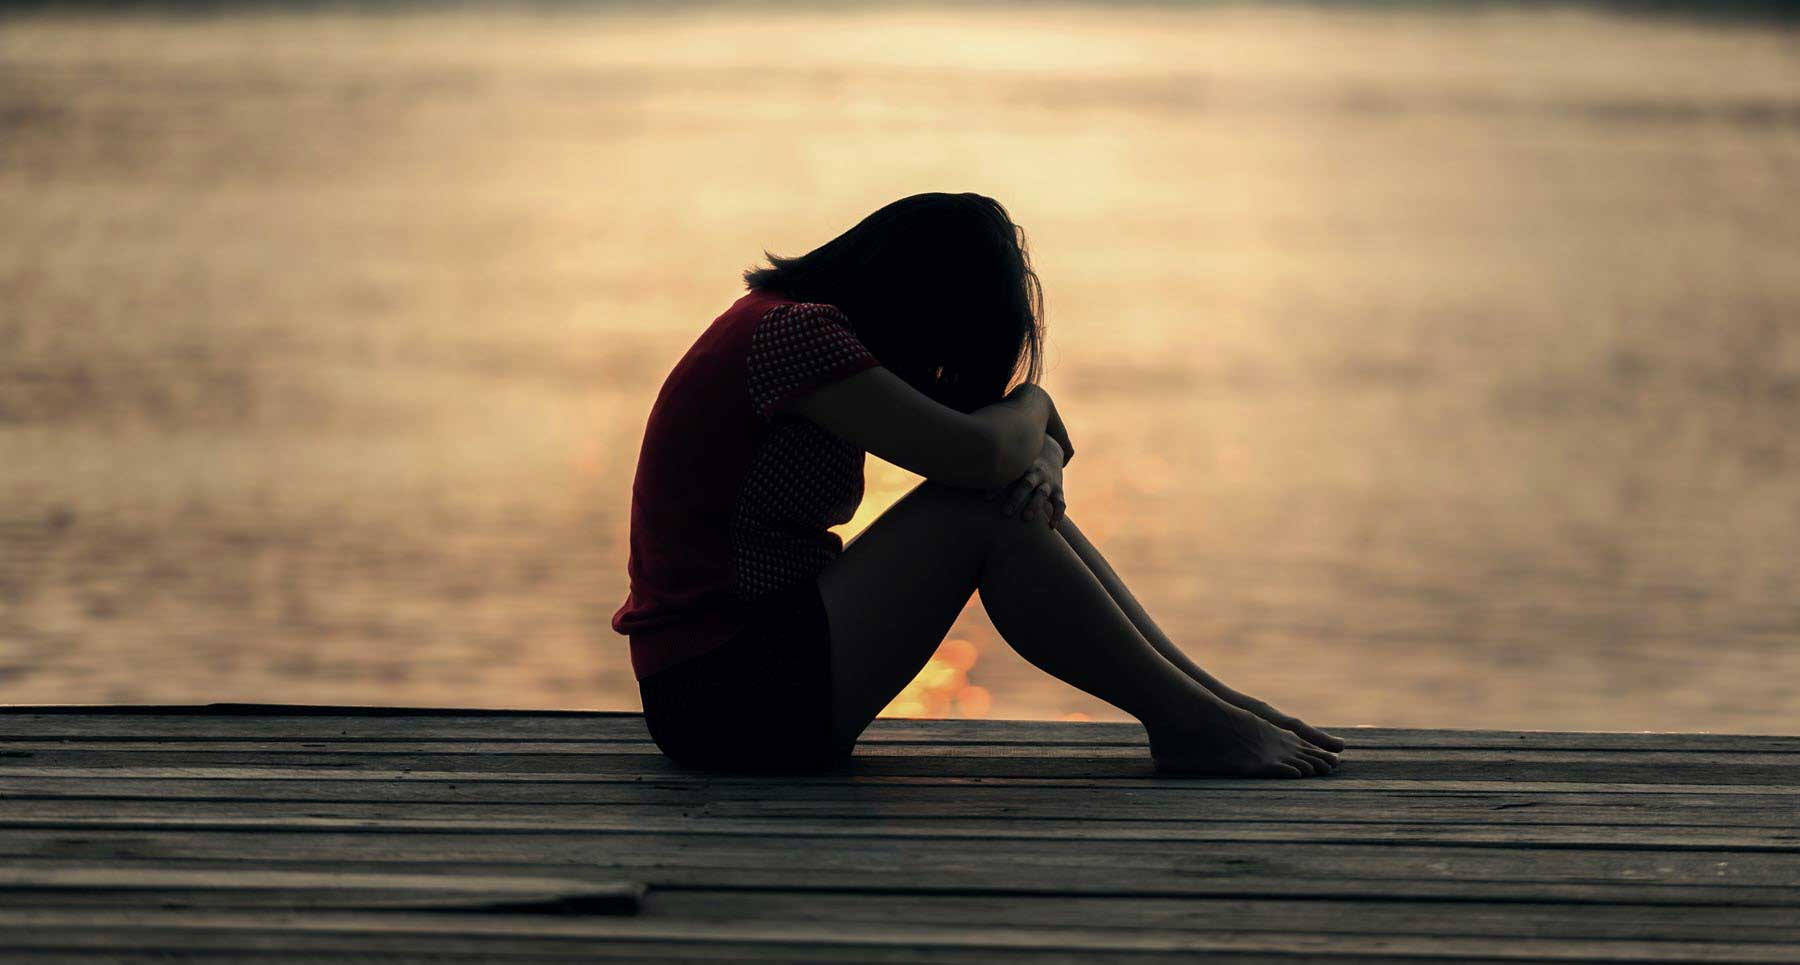 How-to-Stay-Resilient-When-Rejection-From-Friends,-Family,-or-Relationships-Is-Hurting-Your-Self-Esteem-TheHopeLine-Support